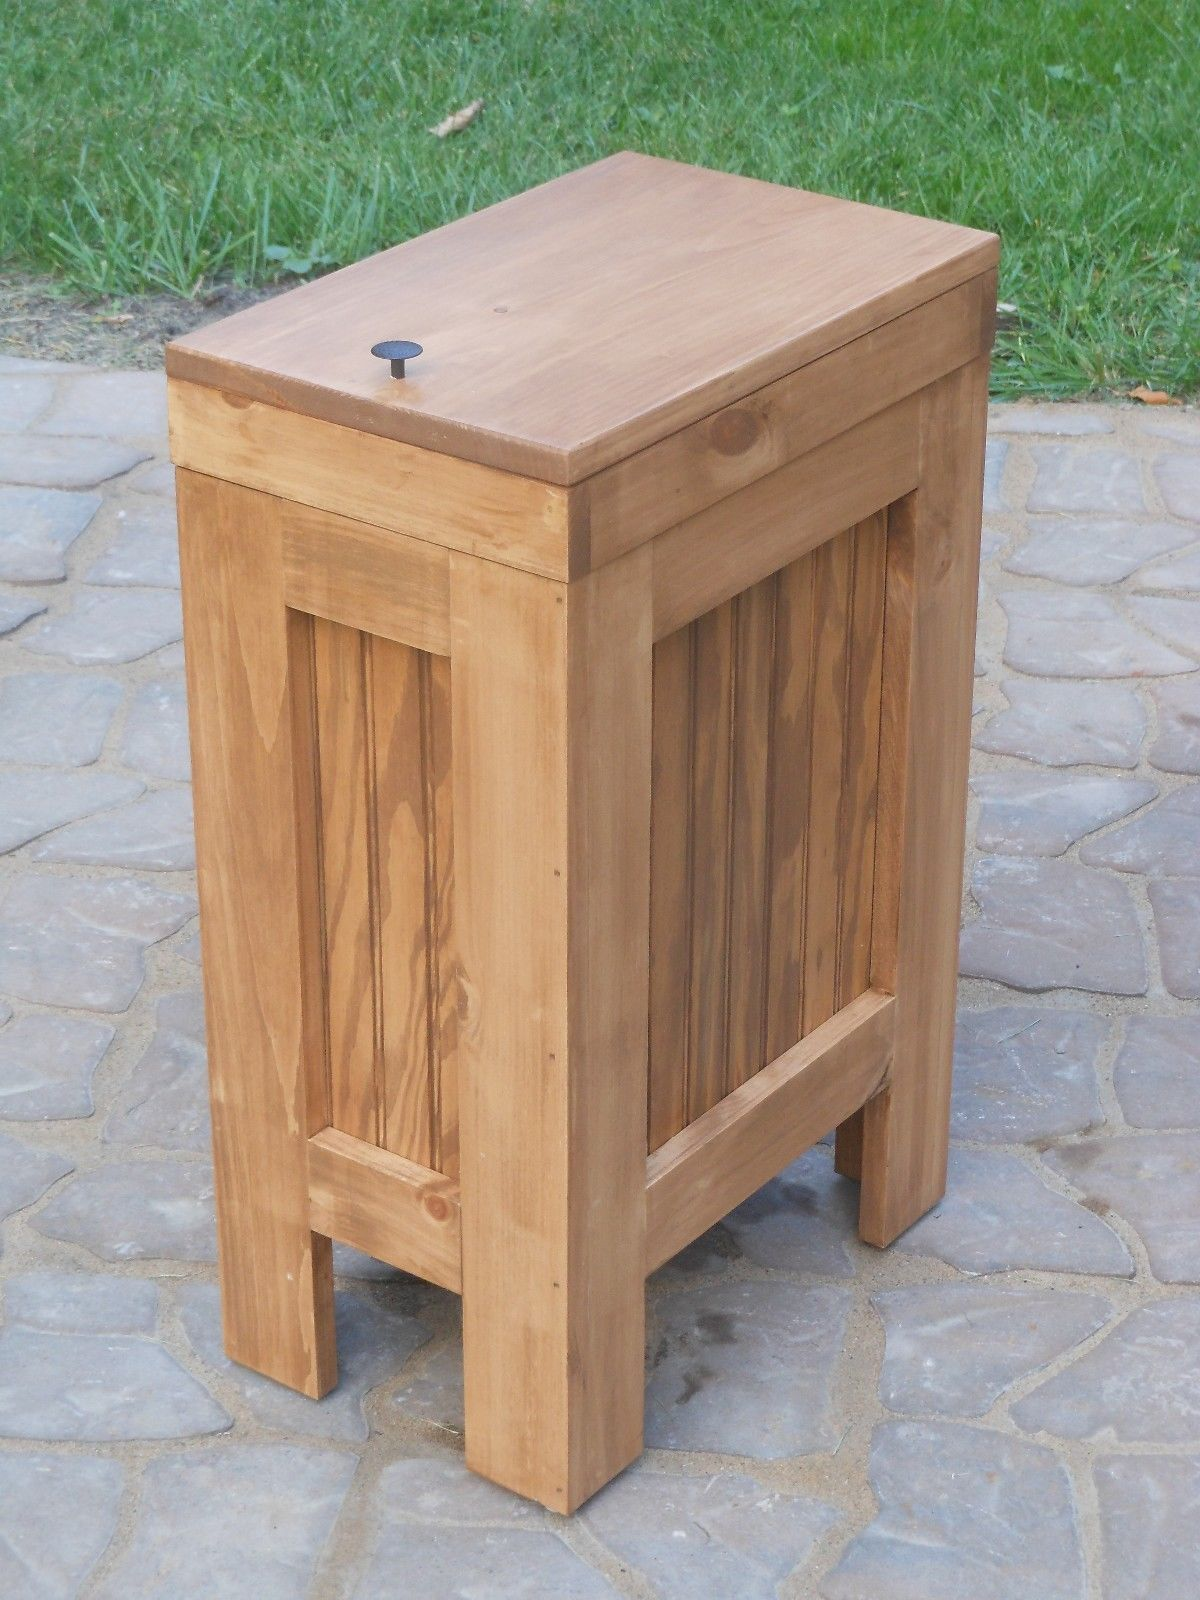 Wooden Kitchen Trash Containers Wood Wooden Kitchen Trash Can Wastebasket Recycling Bin